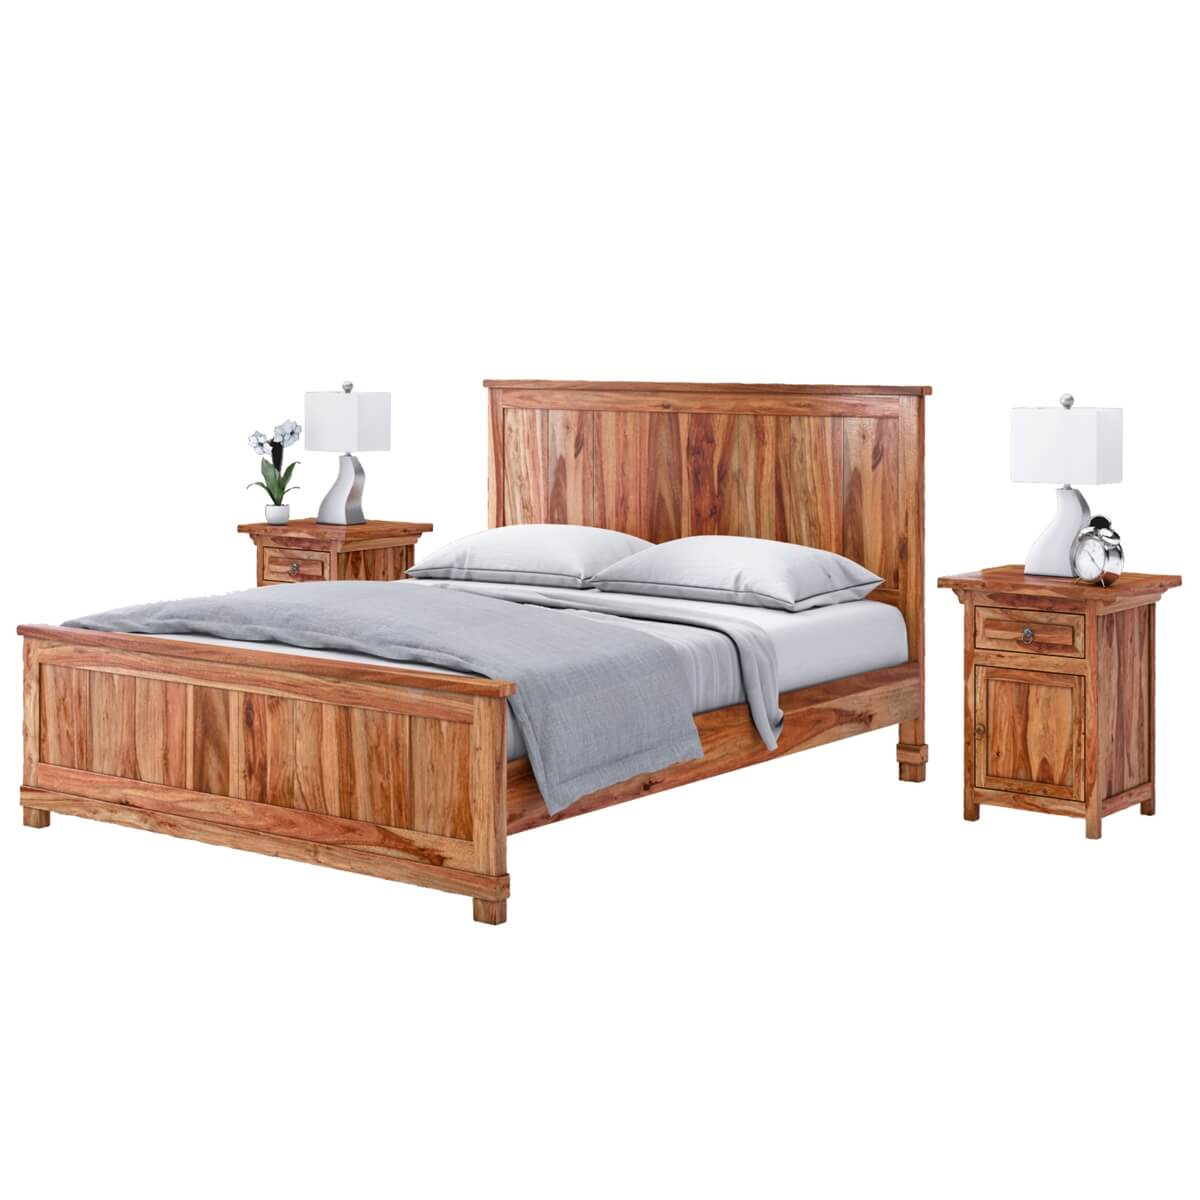 Modern Mission Solid Wood King Size Platform Bed